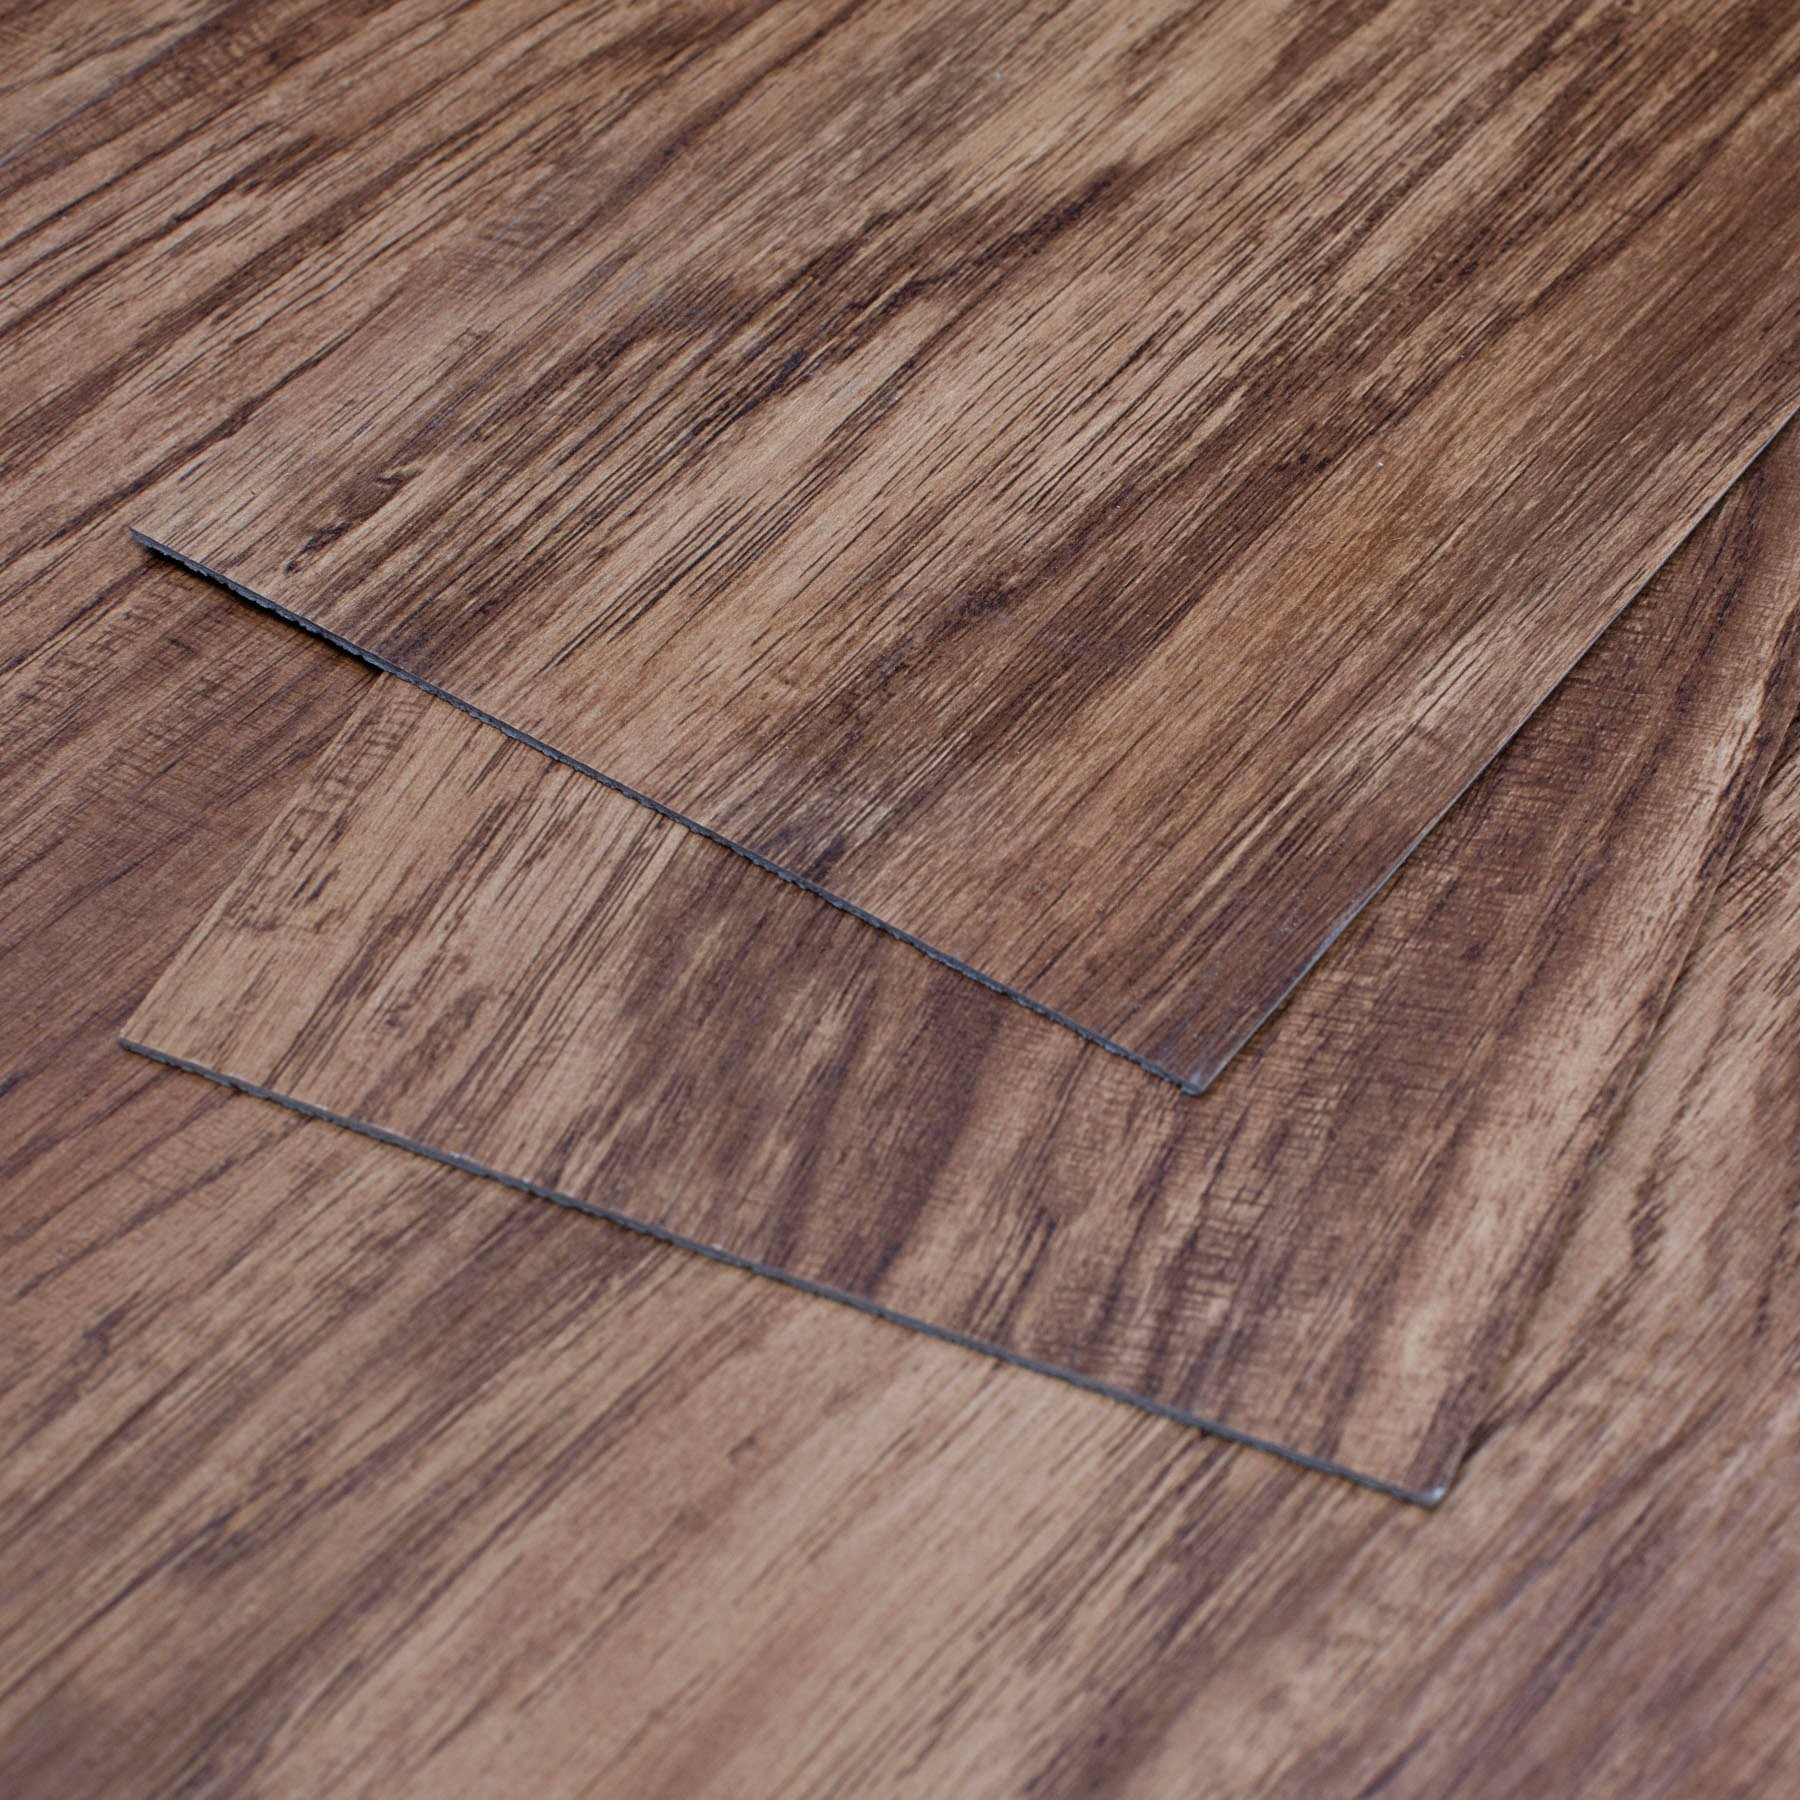 Pvc Flooring Planks : Sq ft heirloom pine vinyl plank flooring pvc